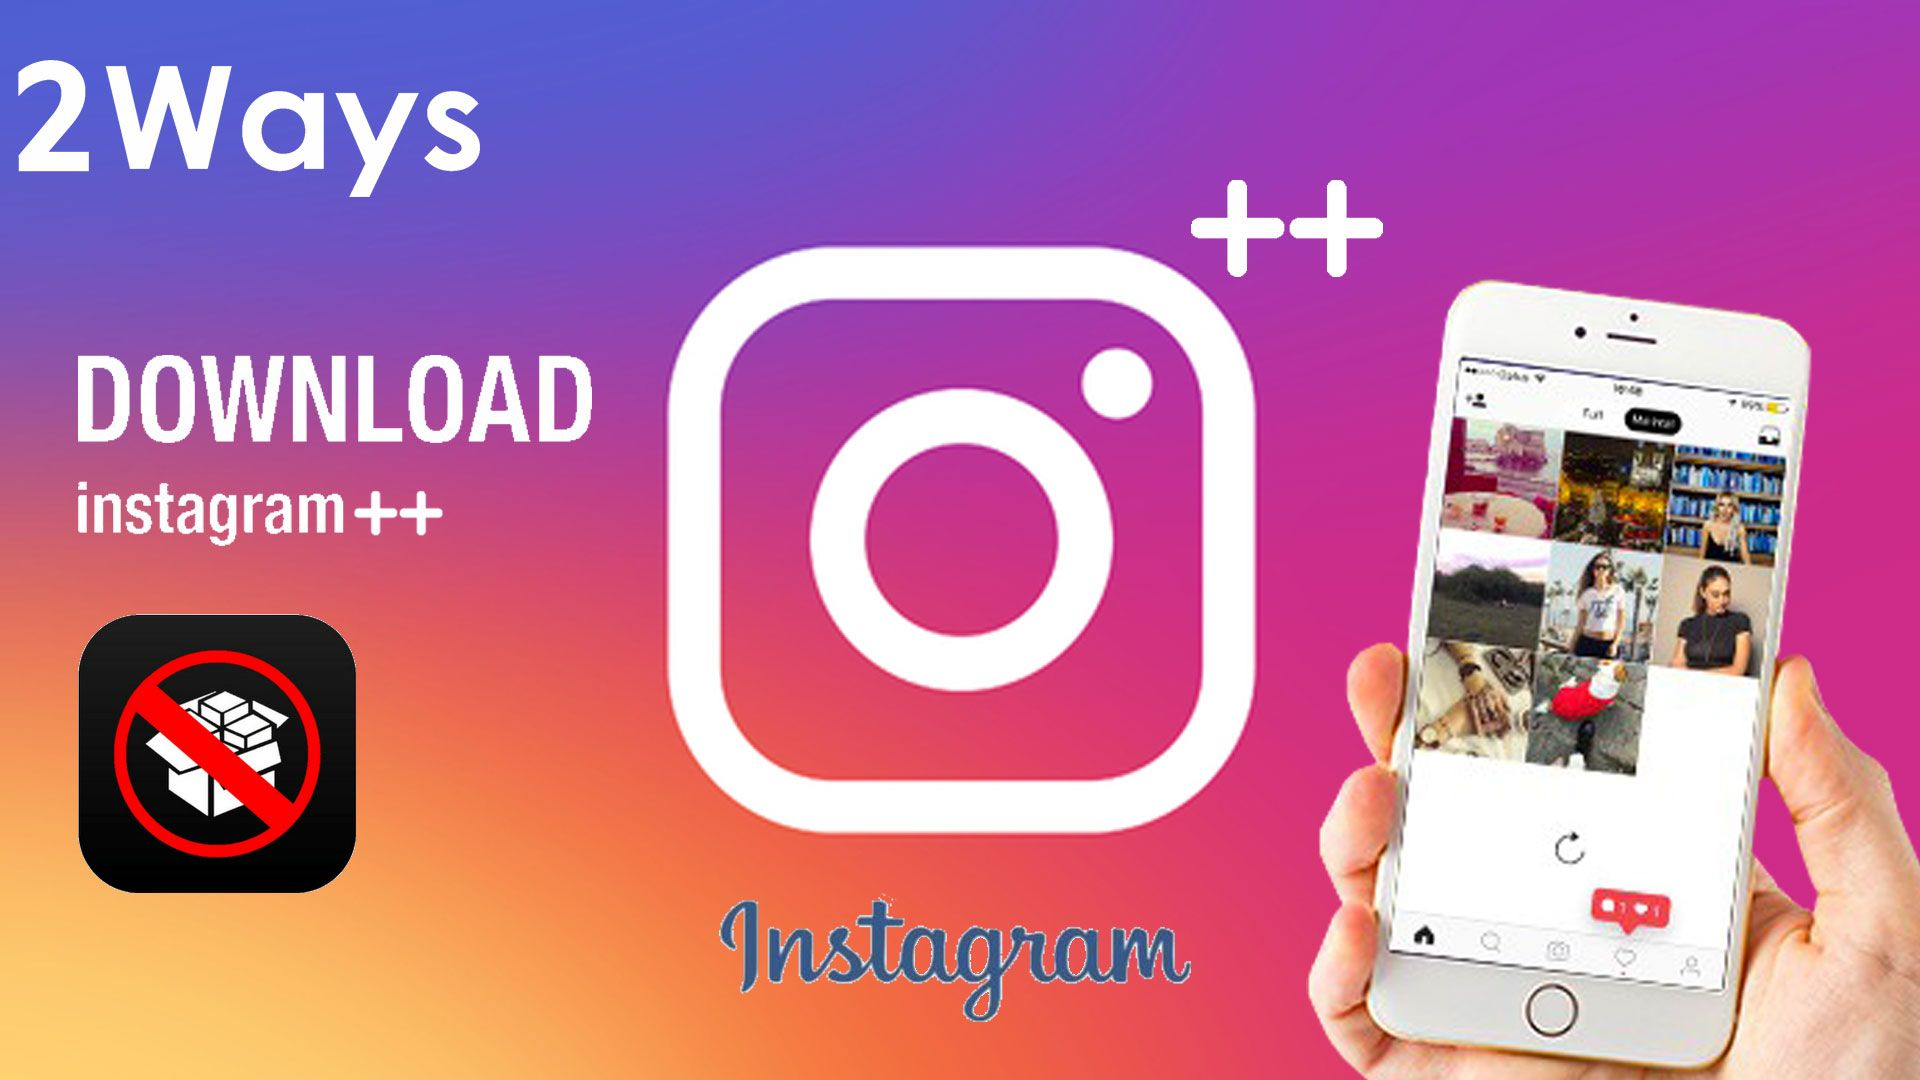 How to install Instagram++ on your iPhone & iPad using iOS